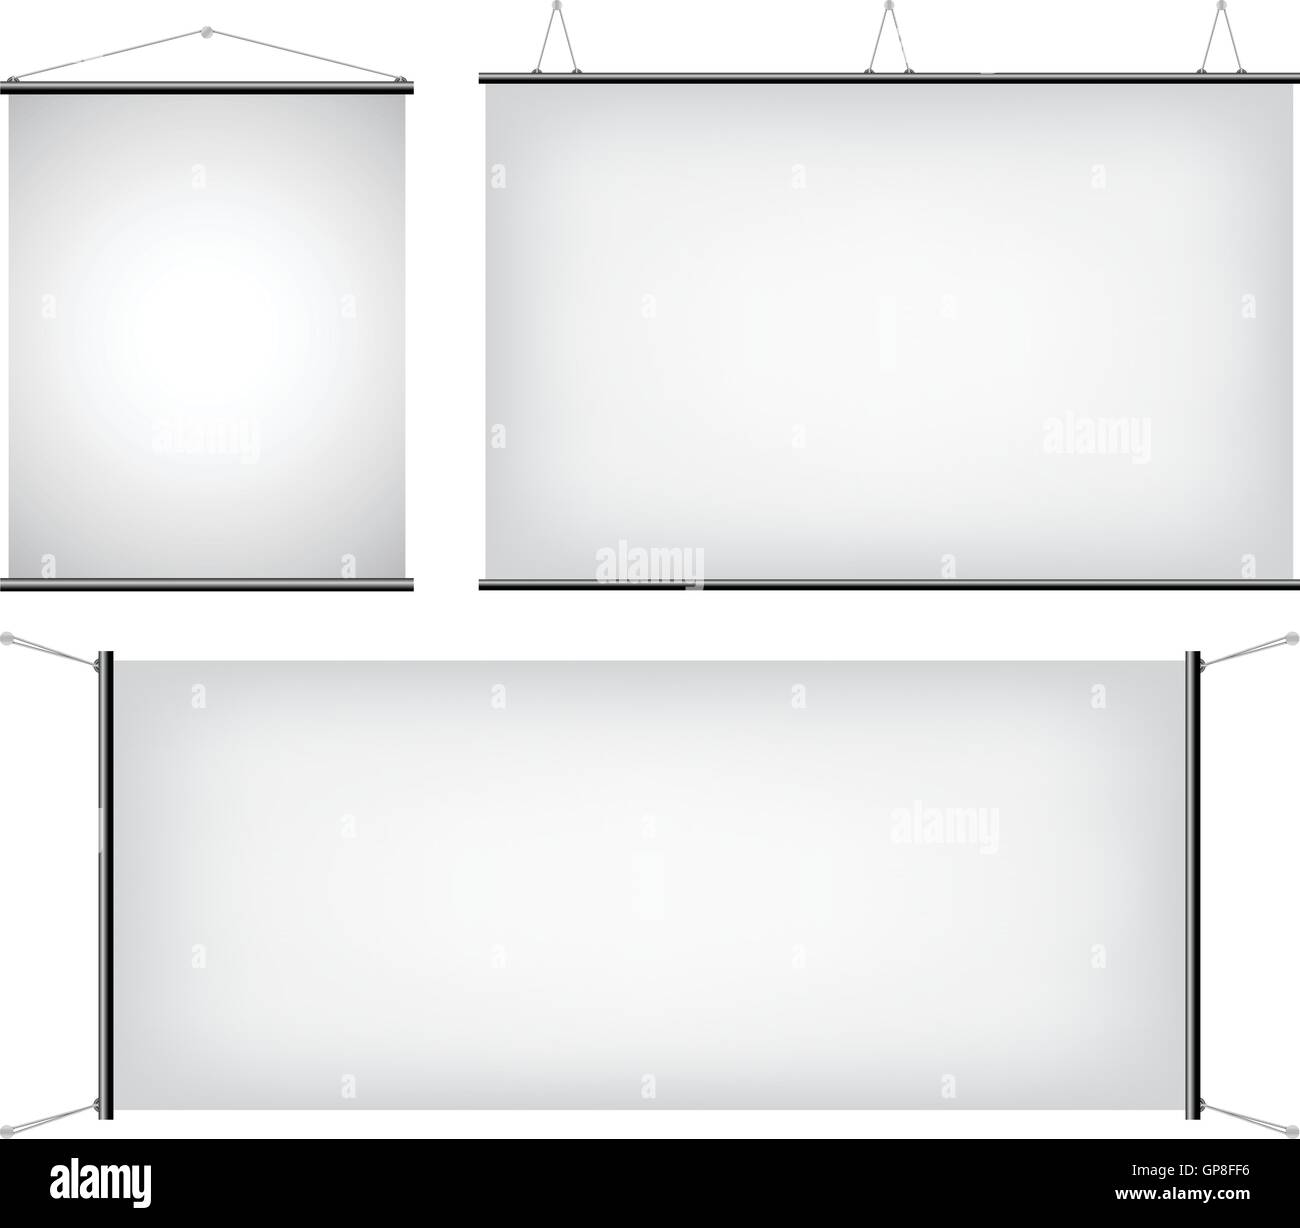 a set of promotional canvas banners hanging - Stock Image